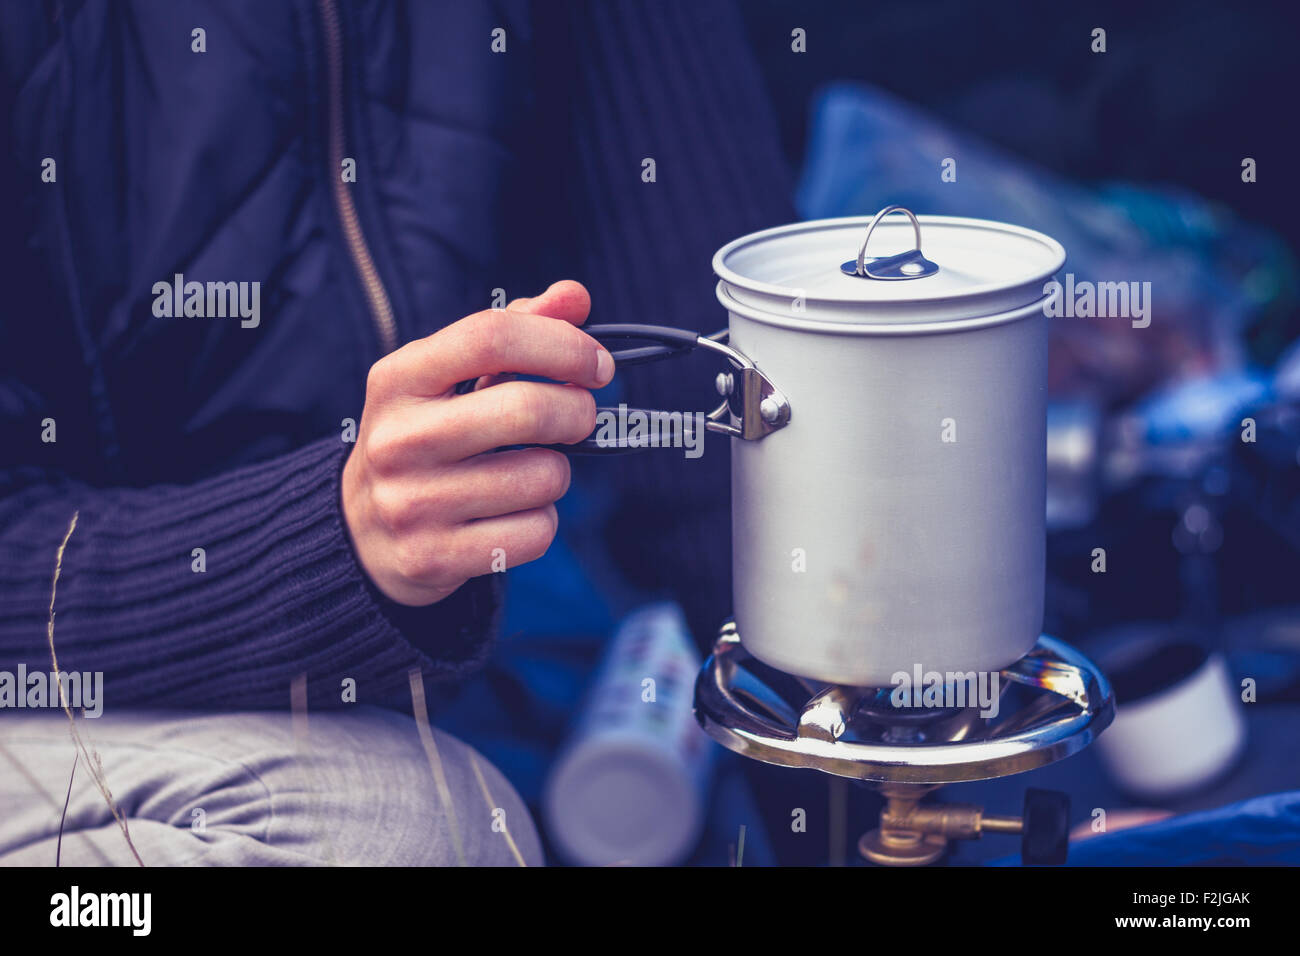 Young woman camping and cooking with stove - Stock Image